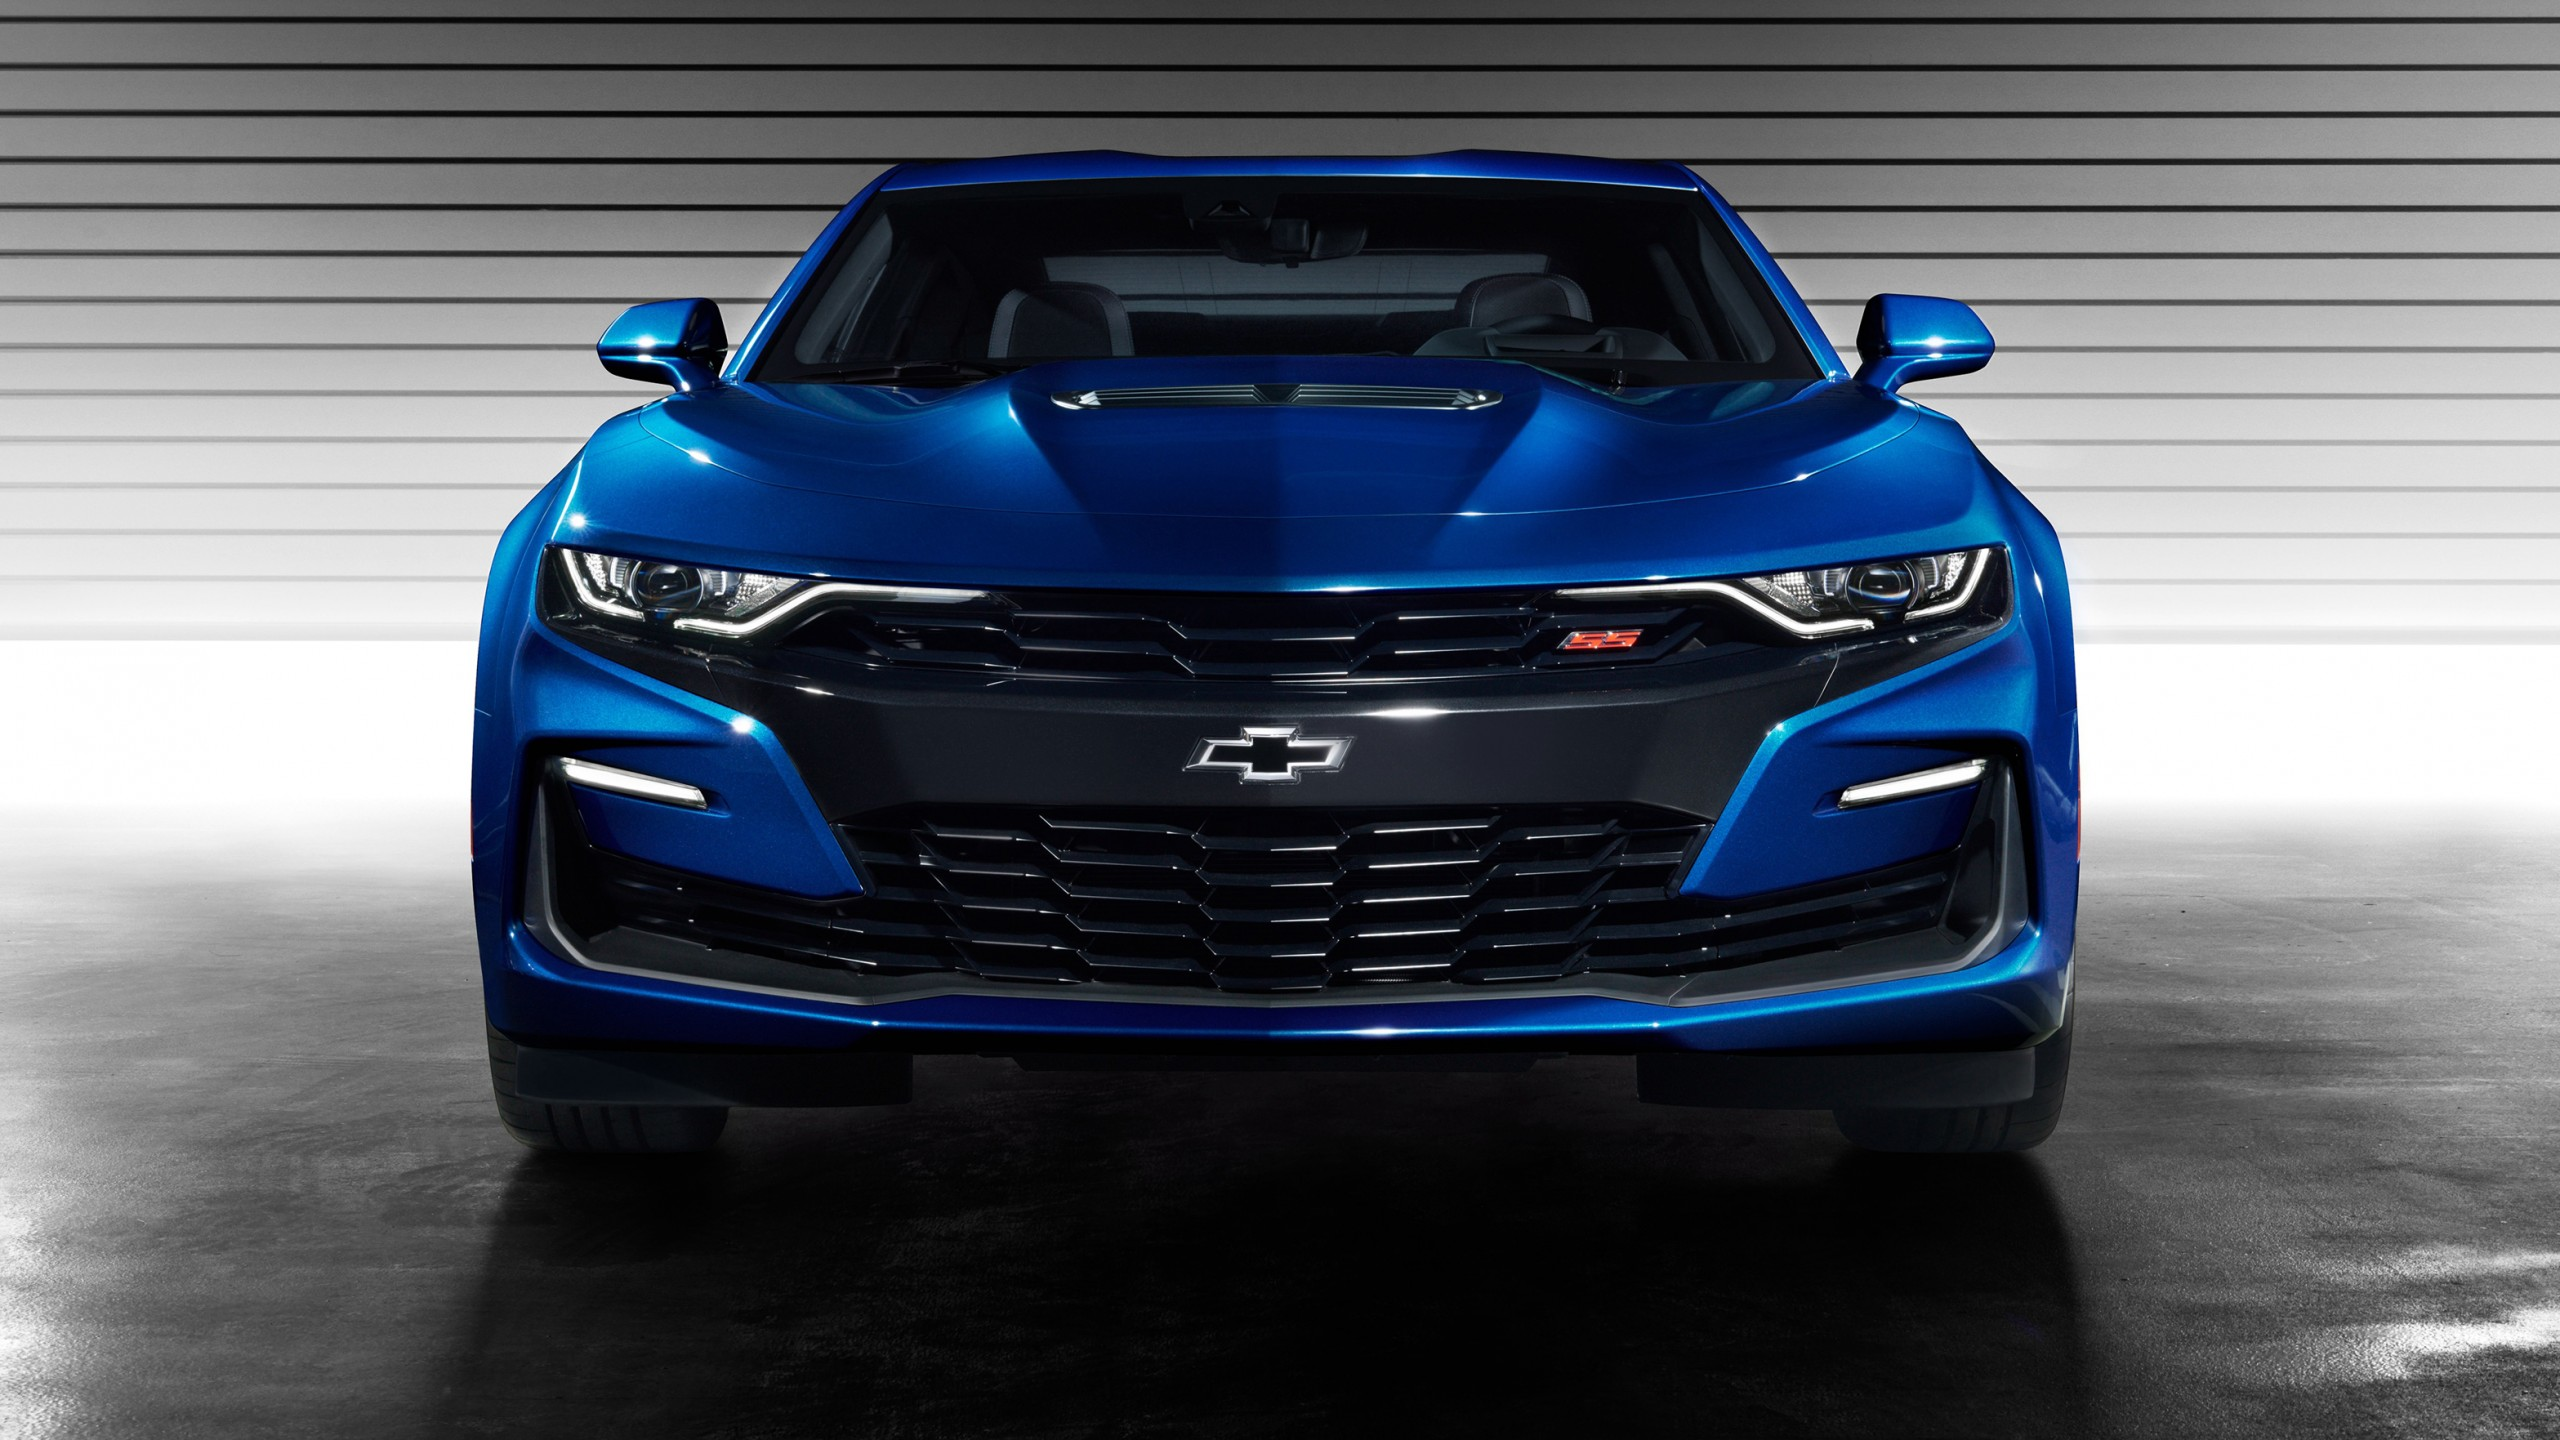 Car Wallpaper Cadillac 2018 2019 Chevrolet Camaro Ss Wallpaper Hd Car Wallpapers